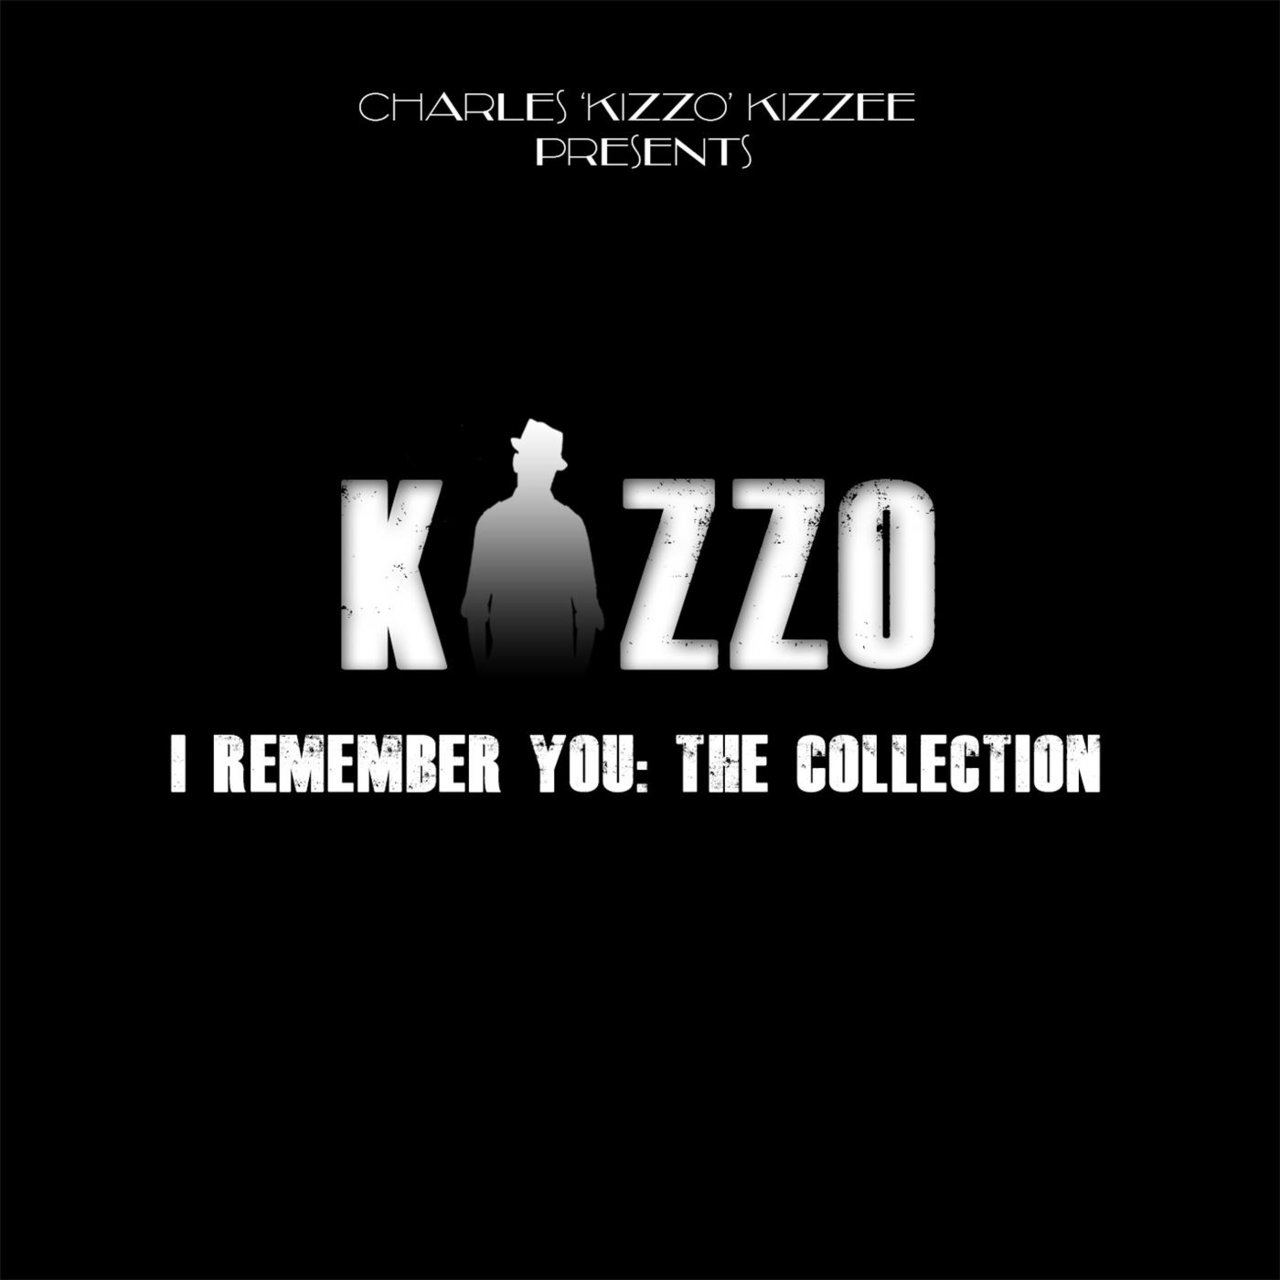 I Remember You: The Collection